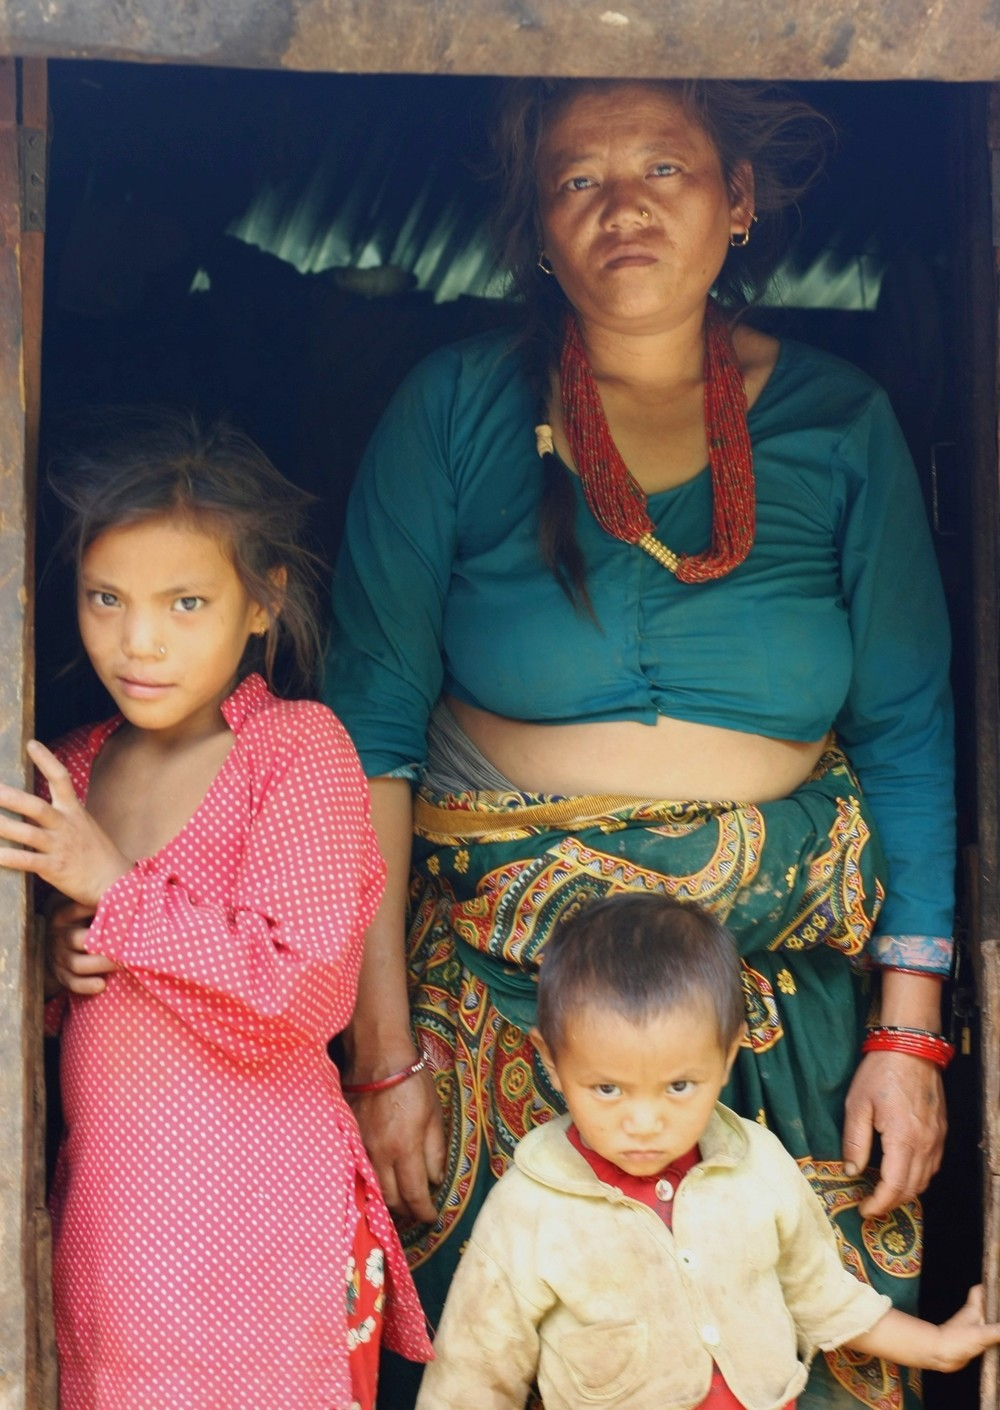 Dil Maya Tamang and two of her children in the doorway of their shelter.